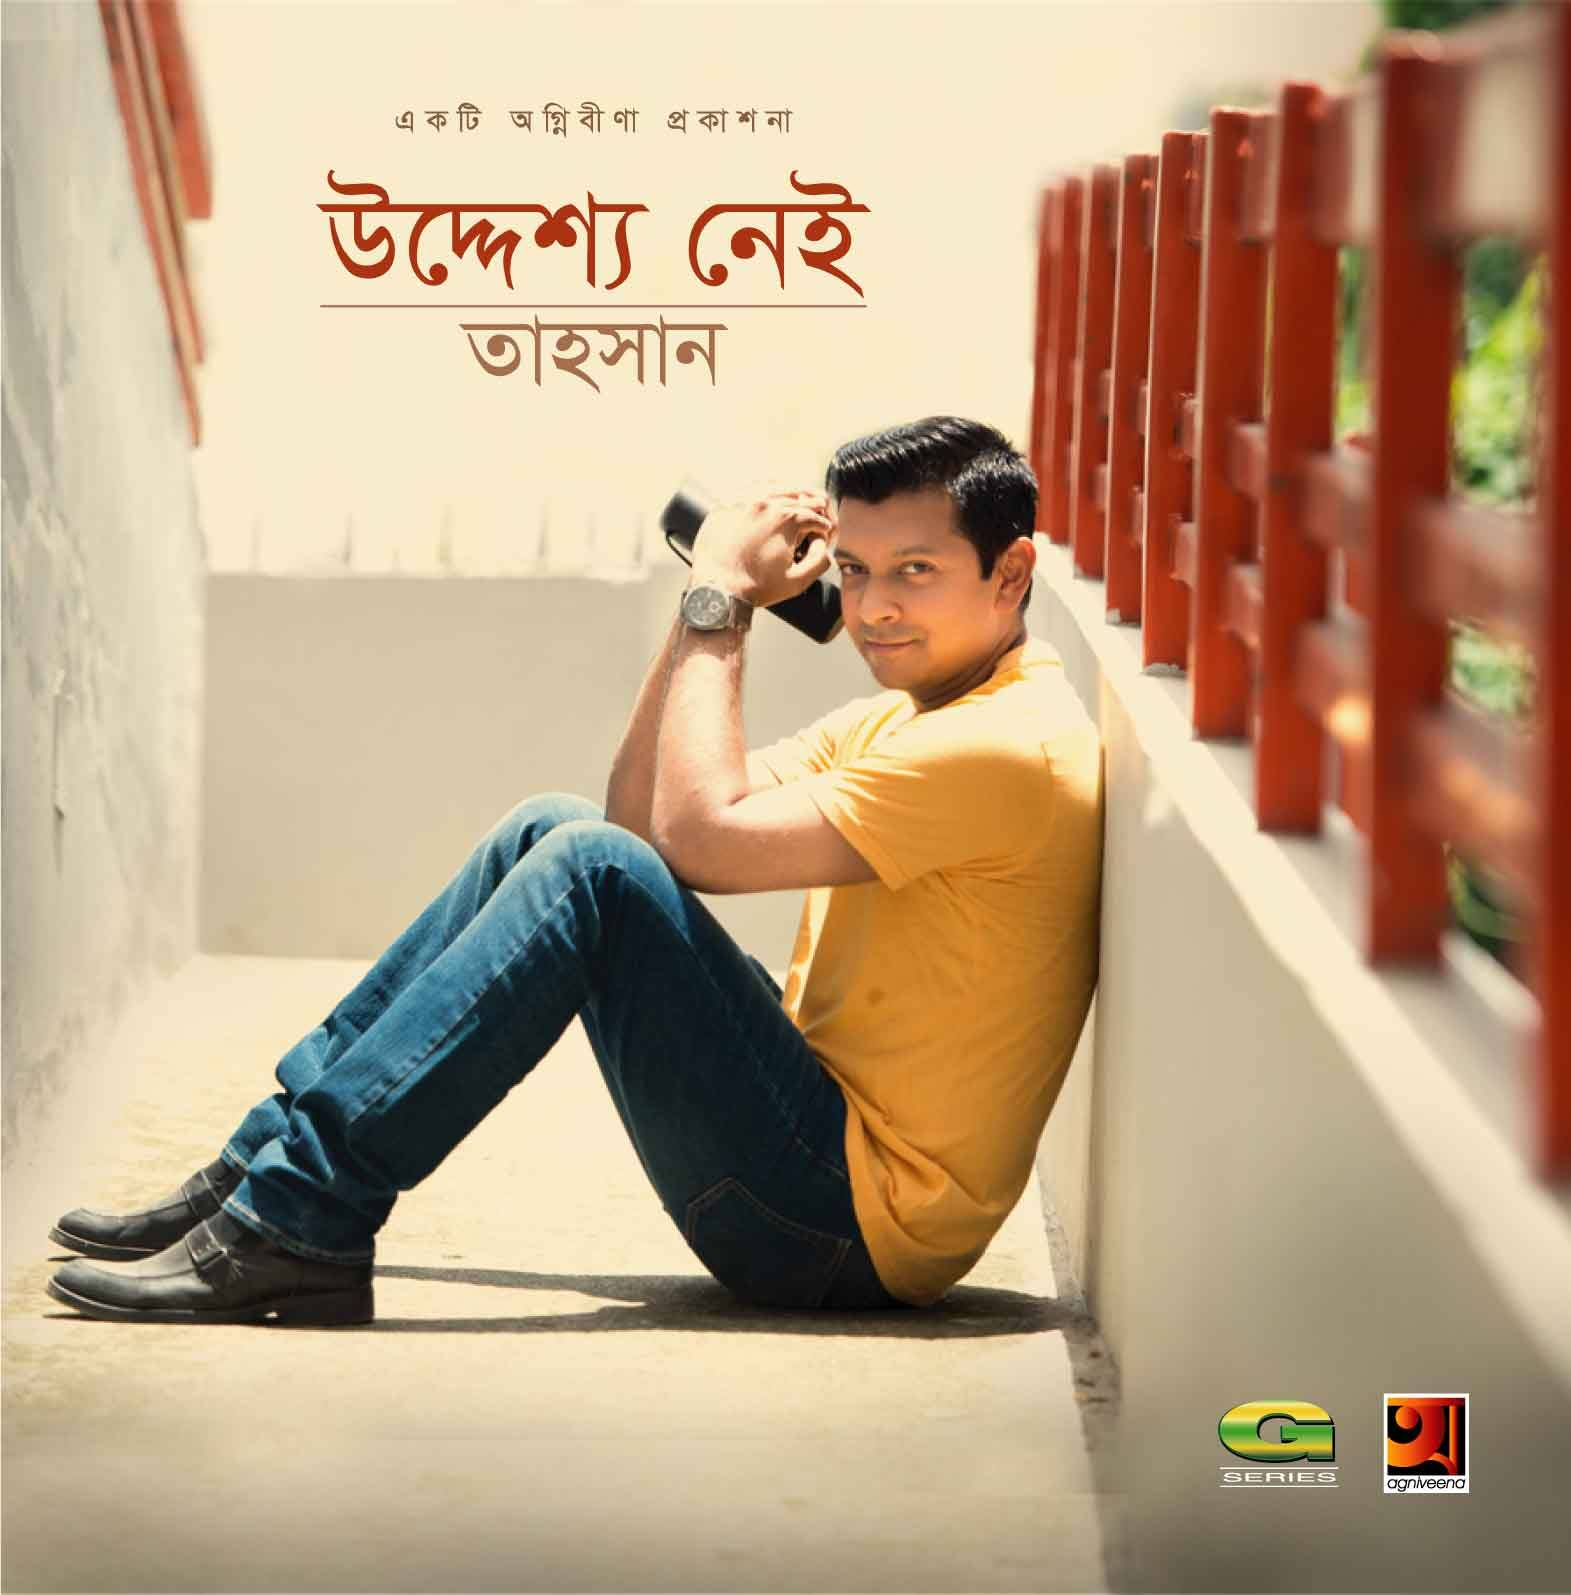 Free download bangla mp3 song megher pore by tahsan ▷ ▷ powermall.